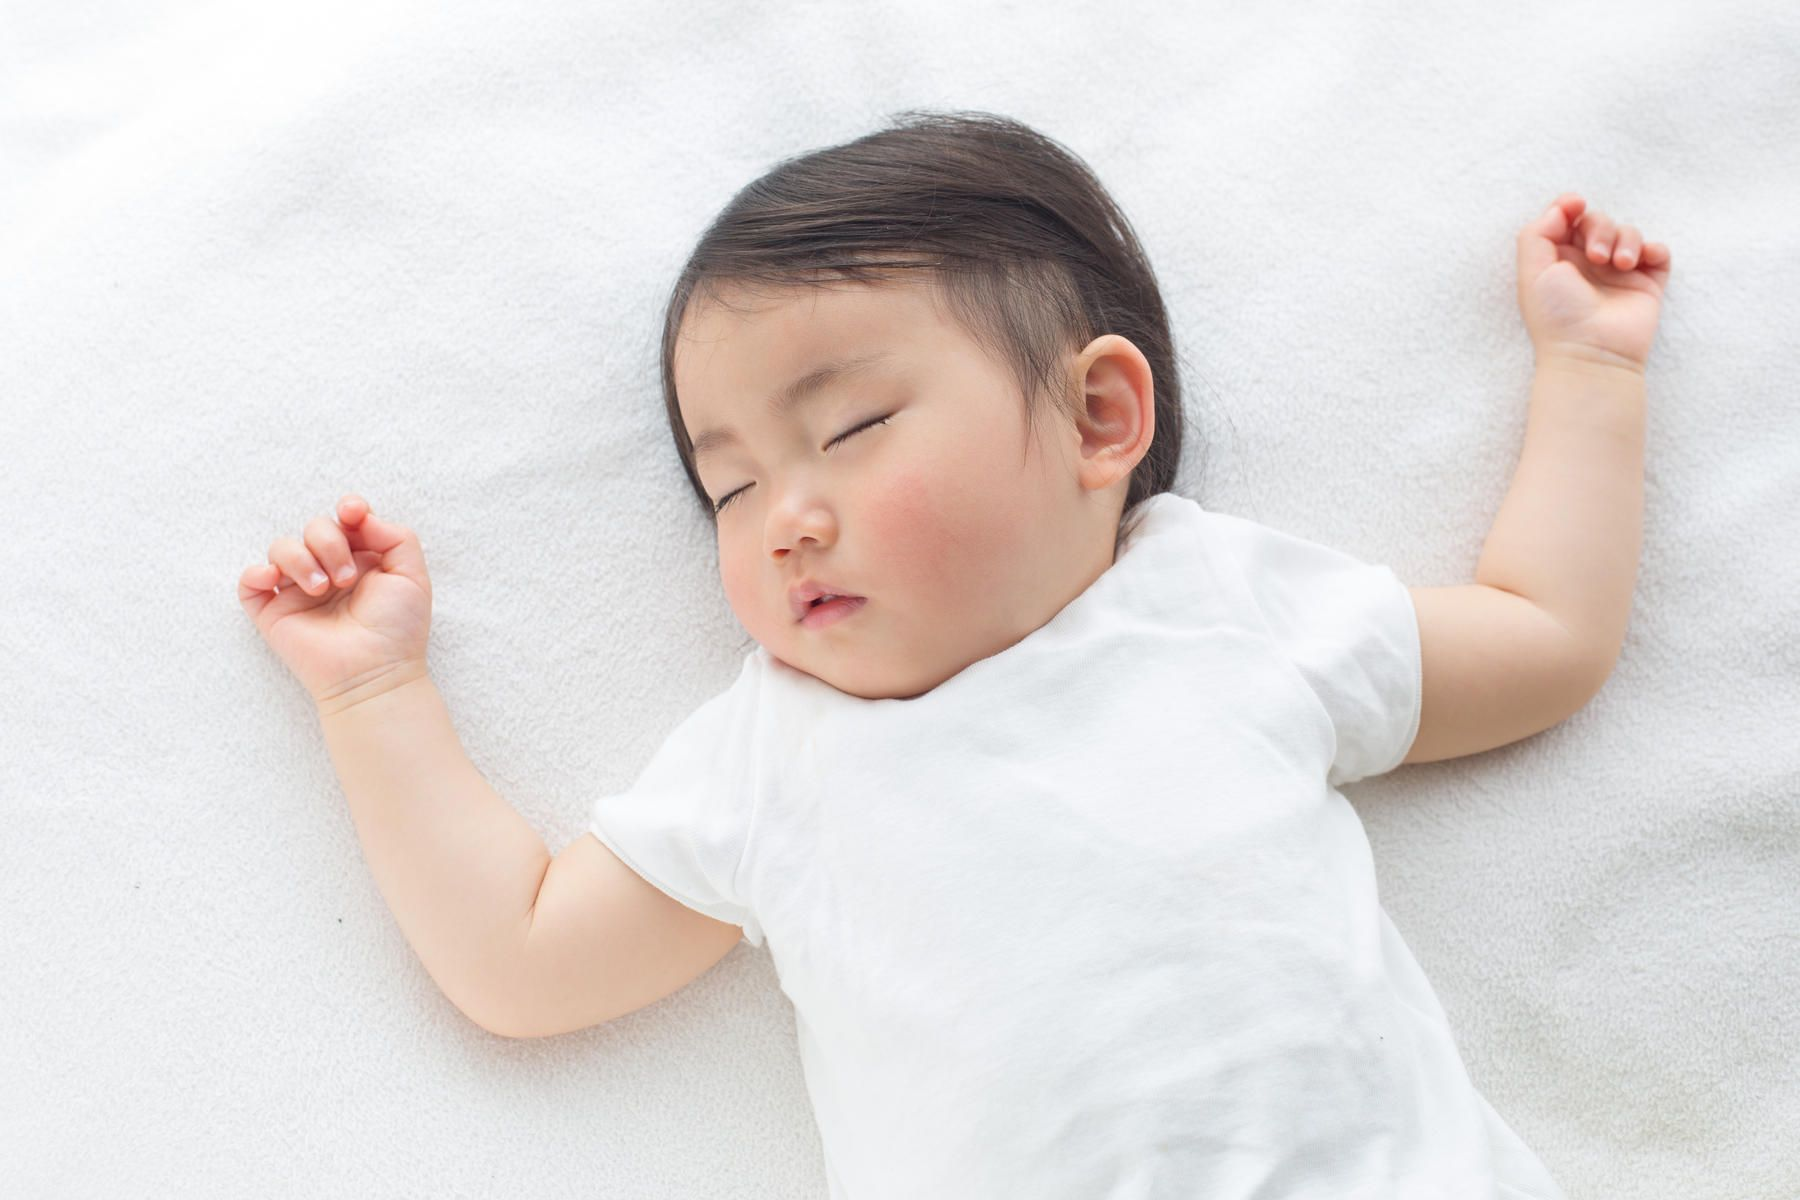 Pediatricians Call For Parents To Read >> Sids Prevention Recommendations For Safe Infant Sleeping The Tiny